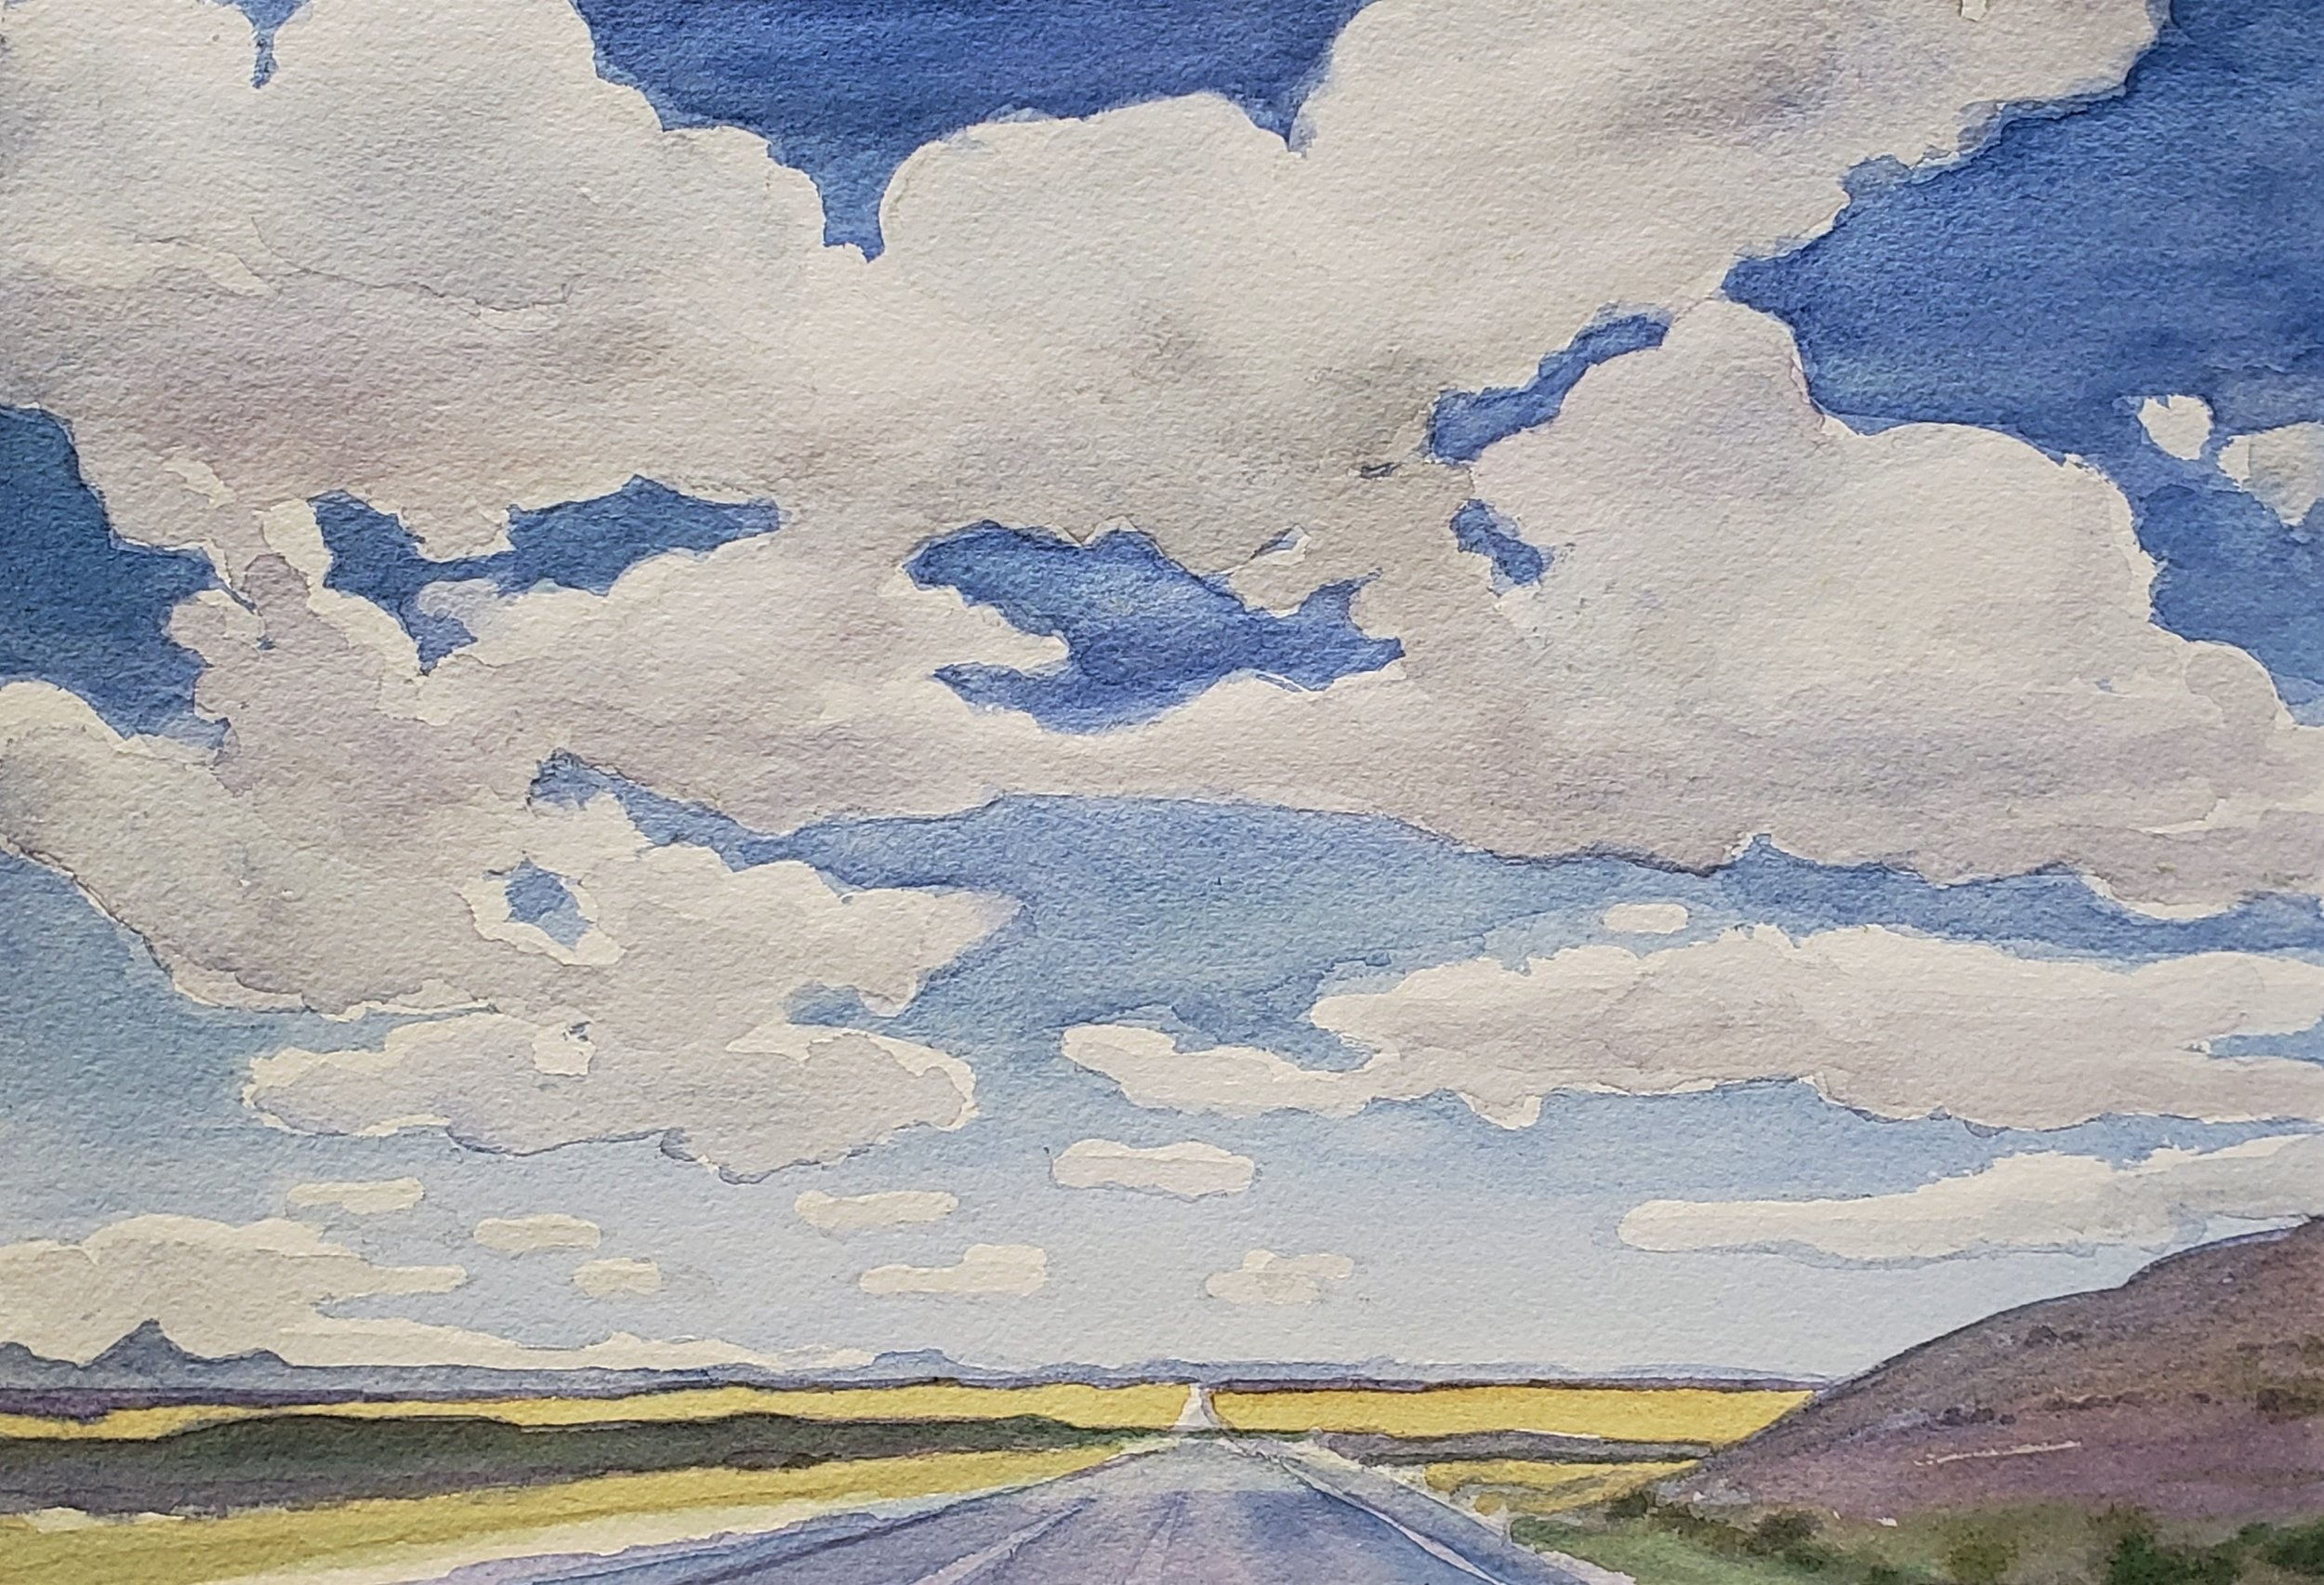 Clouds over Highway 6